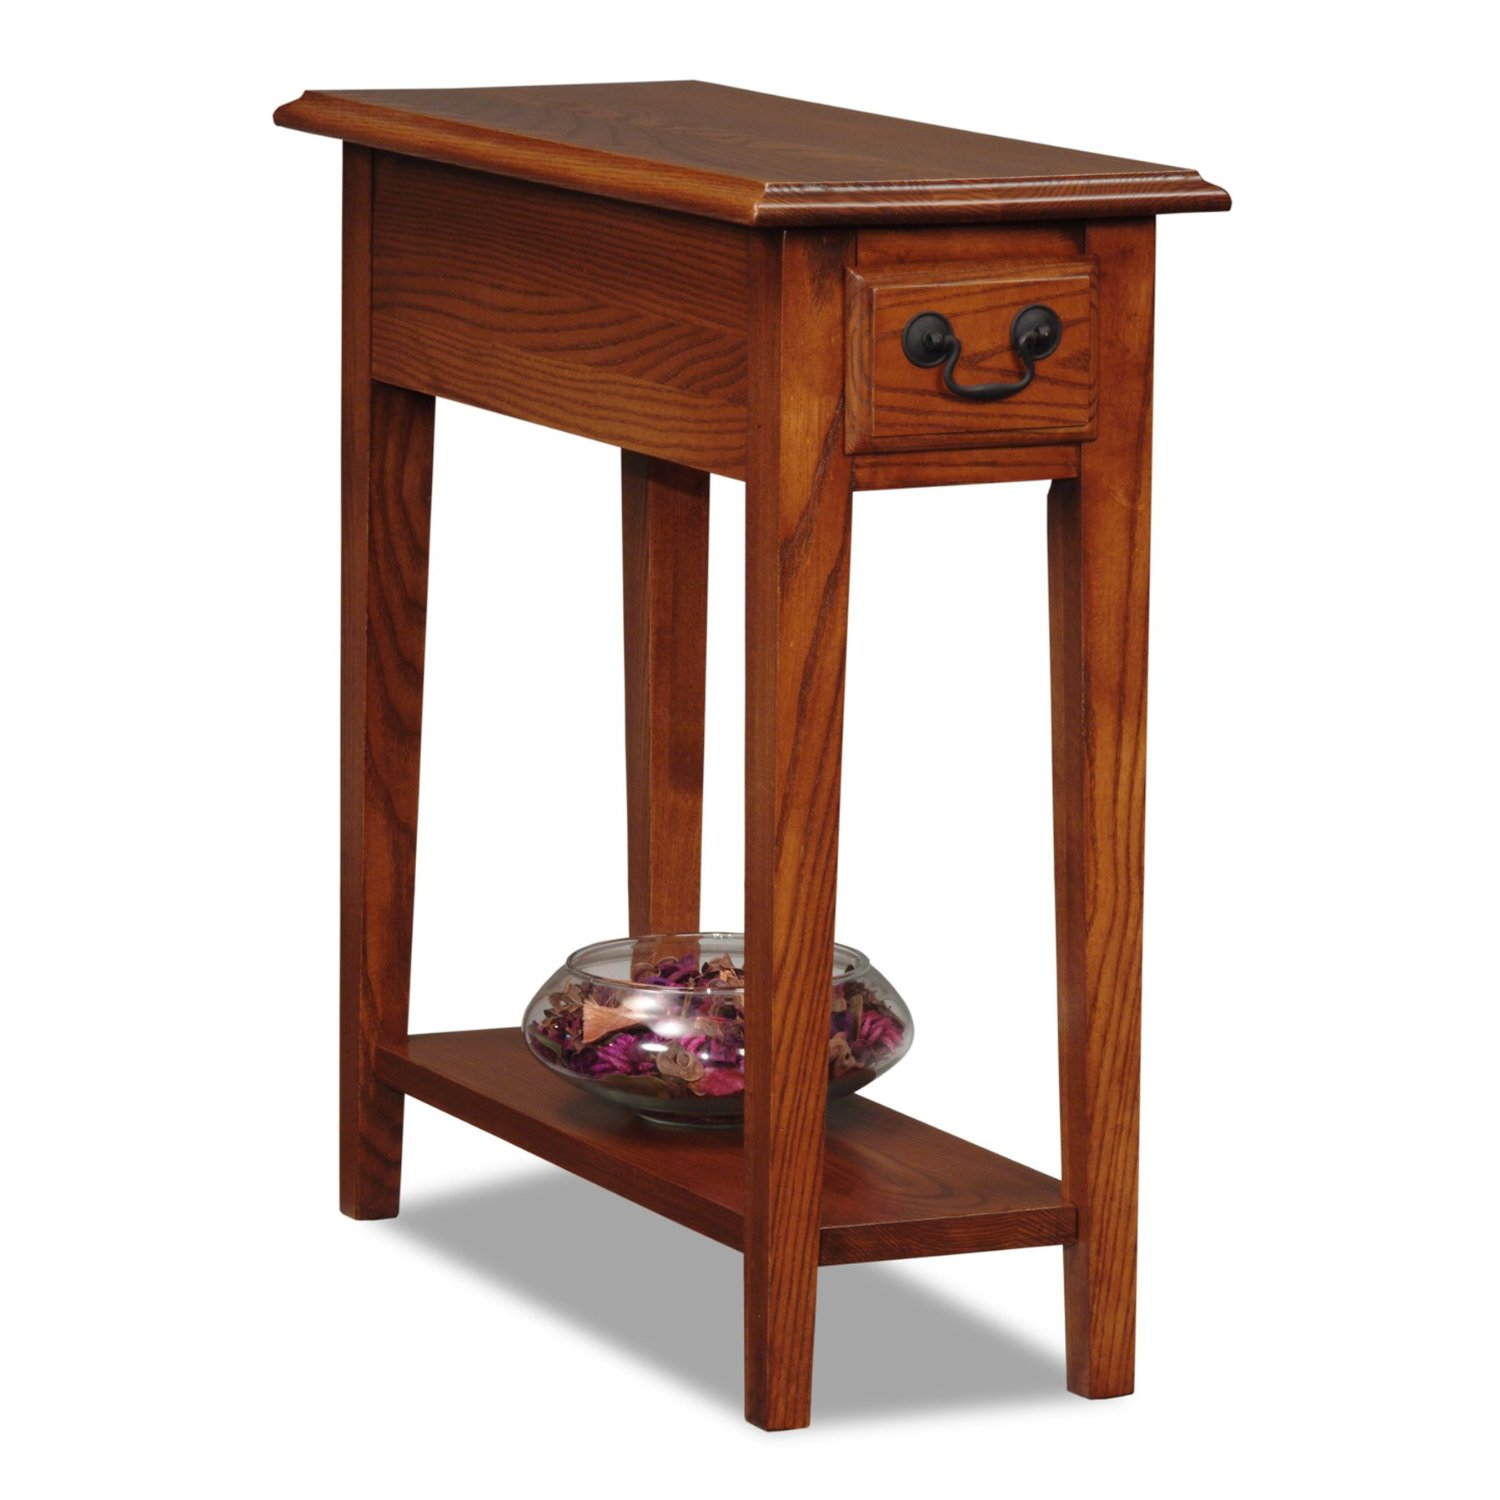 oak end tables with drawers home furniture design oval accent table small tall black pottery barn floor lamp square coffee storage baskets beach house furnishings mirage mirrored